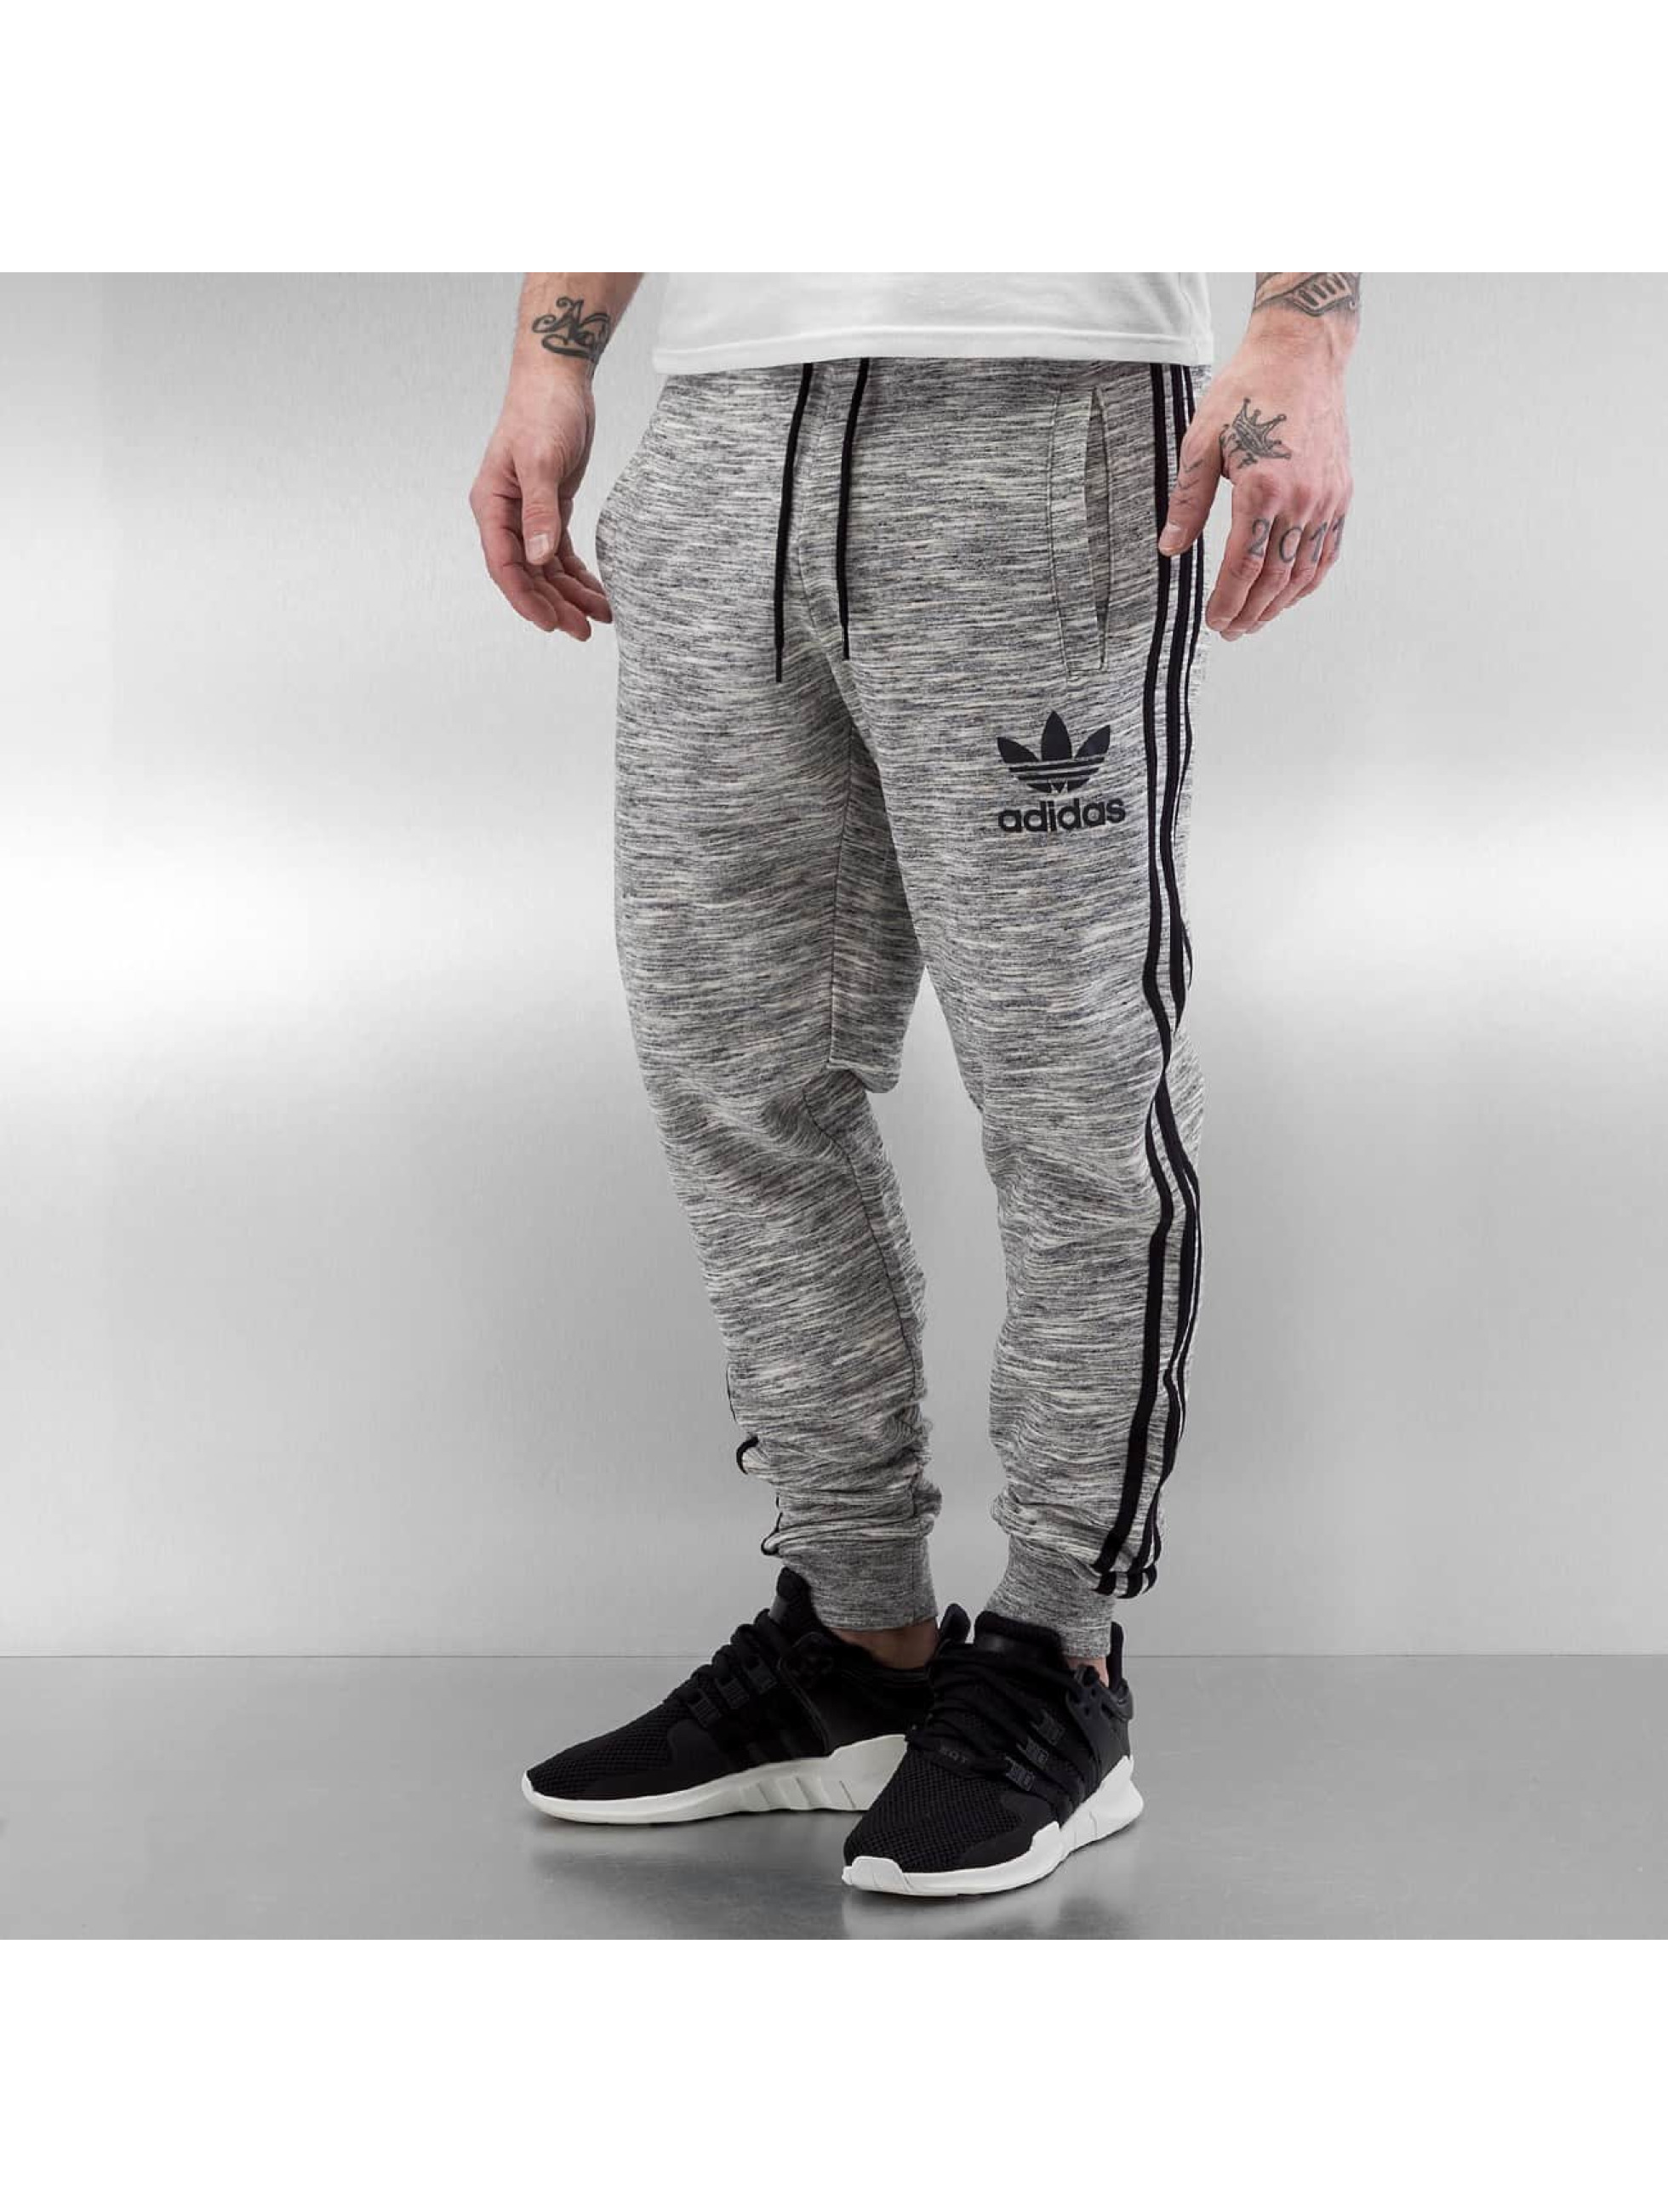 adidas herren hosen jogginghose clfn french terry ebay. Black Bedroom Furniture Sets. Home Design Ideas